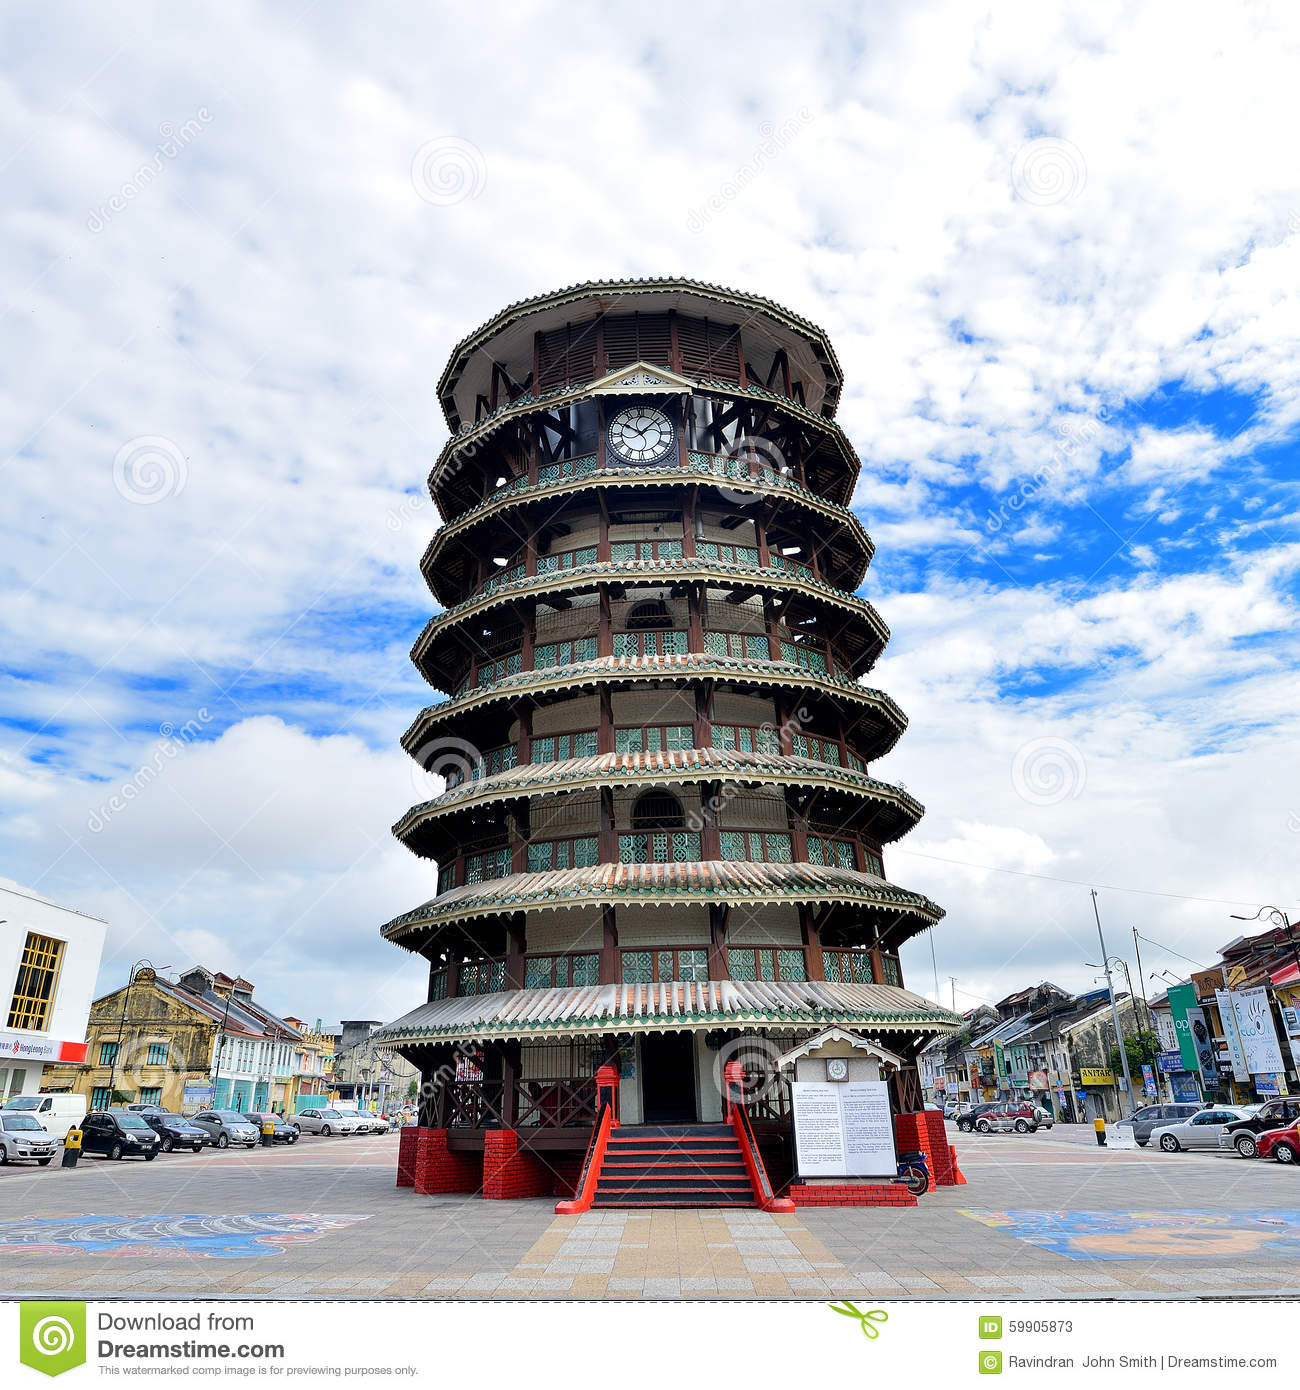 teluk intan asian singles 25th asian intercity: quick link • men's singles • women's singles  anson hotel is centrally located in the town of teluk intan  anbon tailor details un.